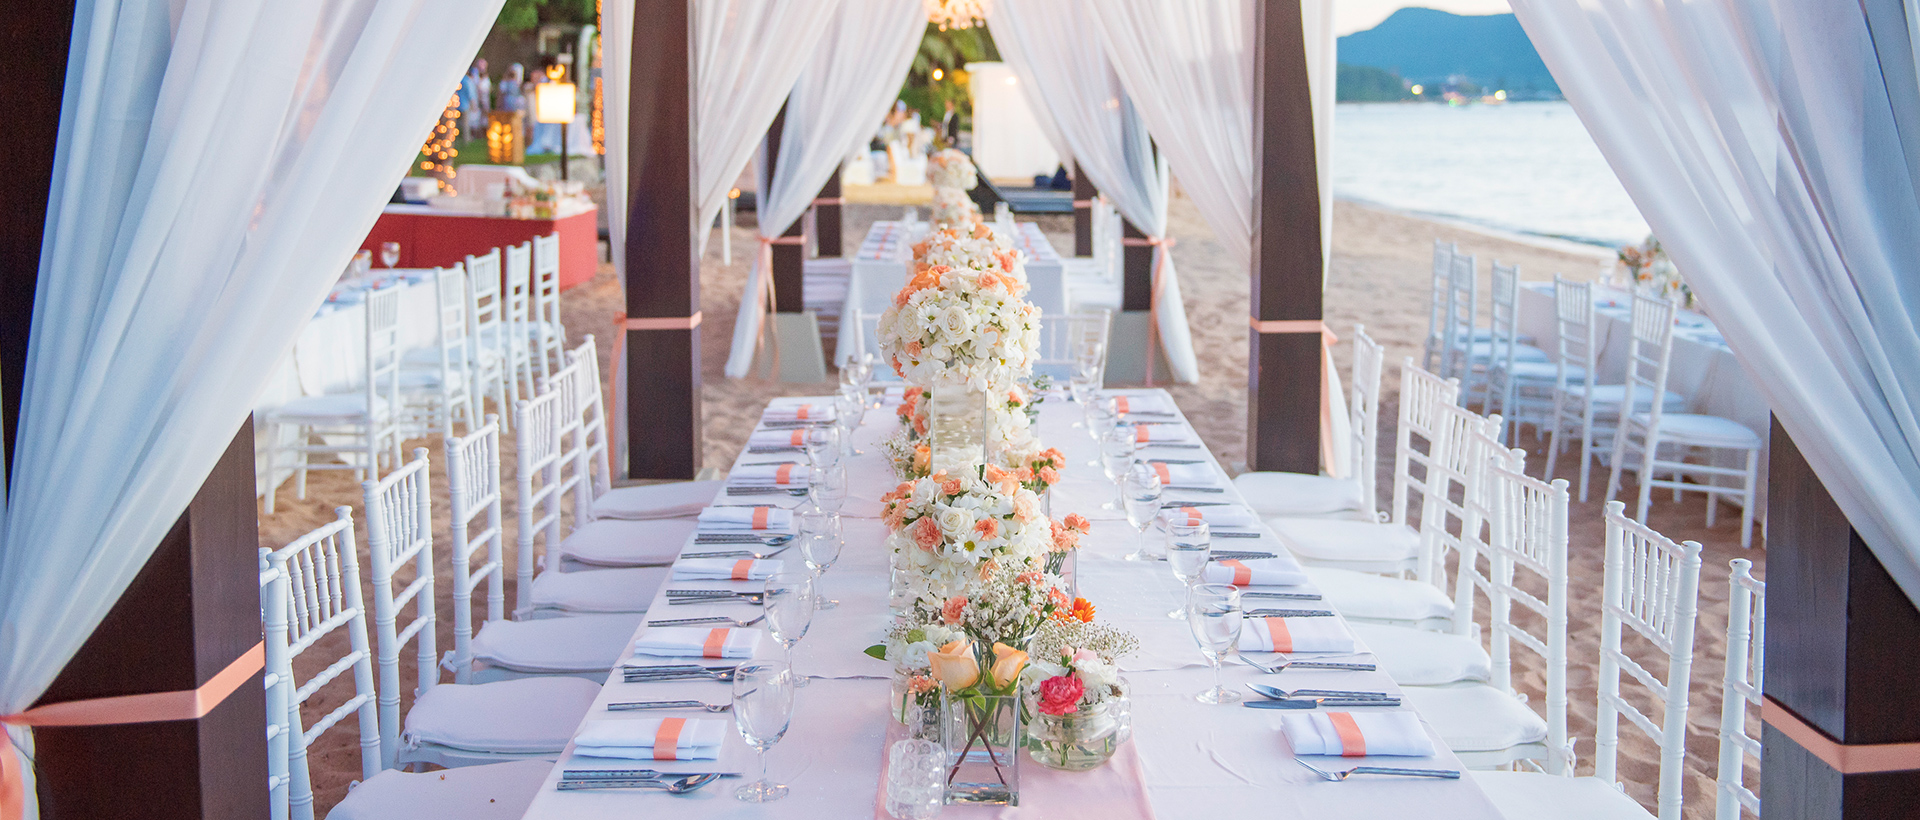 Dining & Reception Crystal Cove by Elegant Hotels